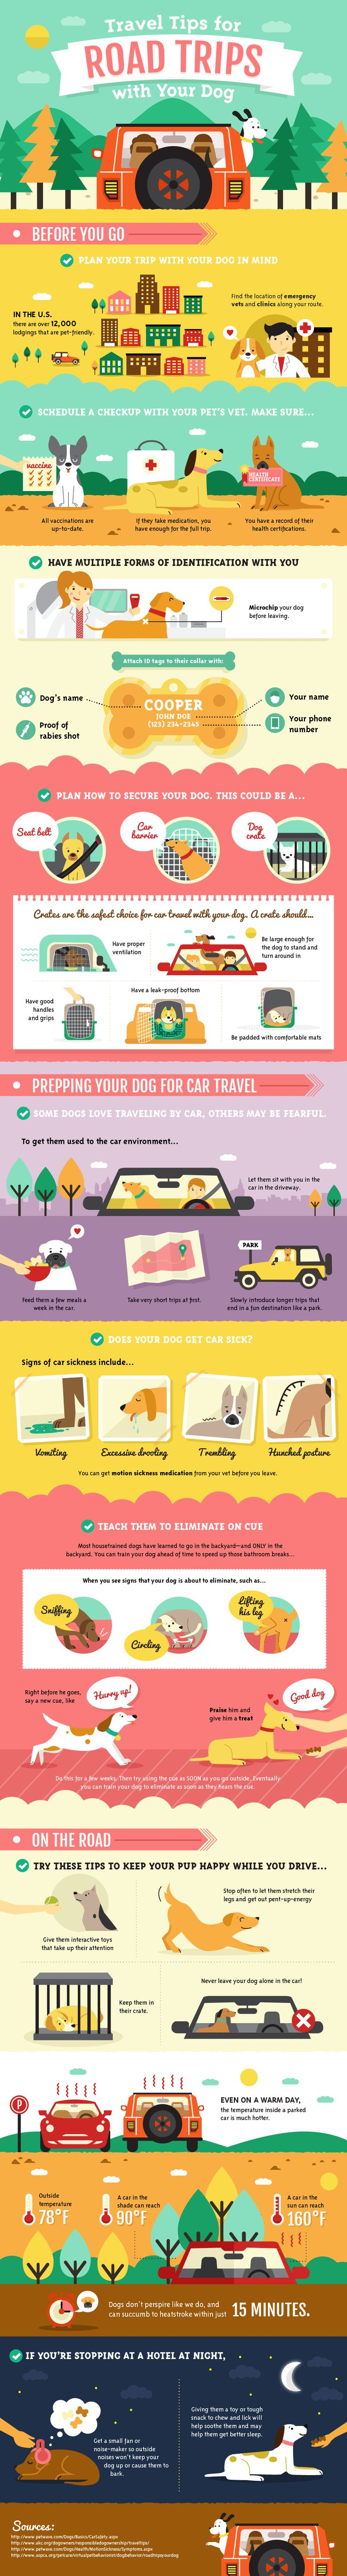 Travel tips for road trips with your dog. (More design inspiration at )